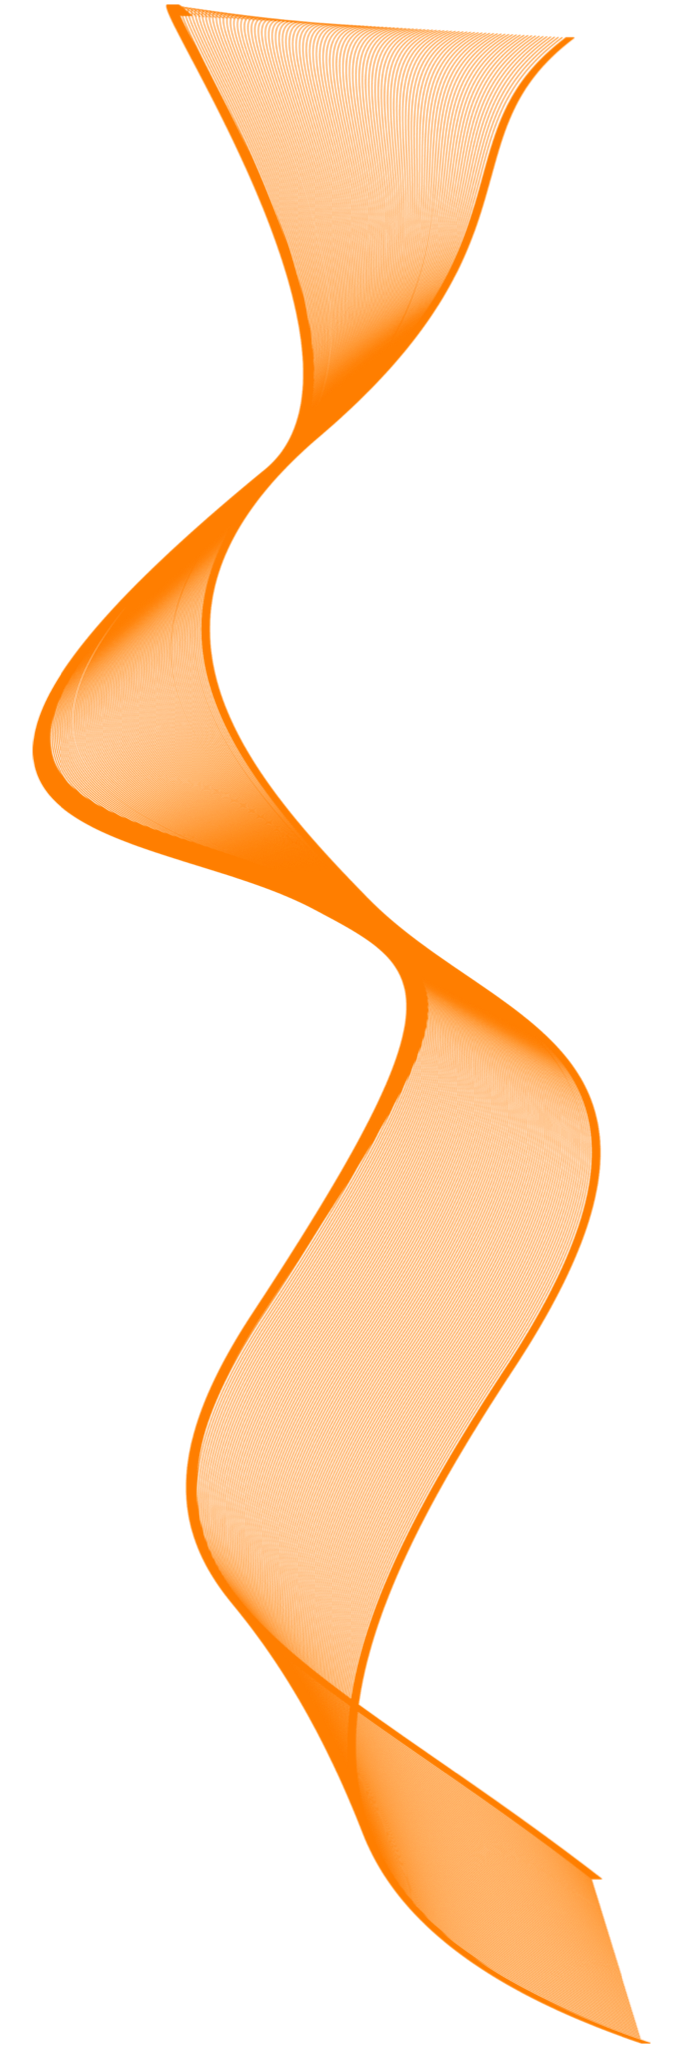 bpc ribbon.png